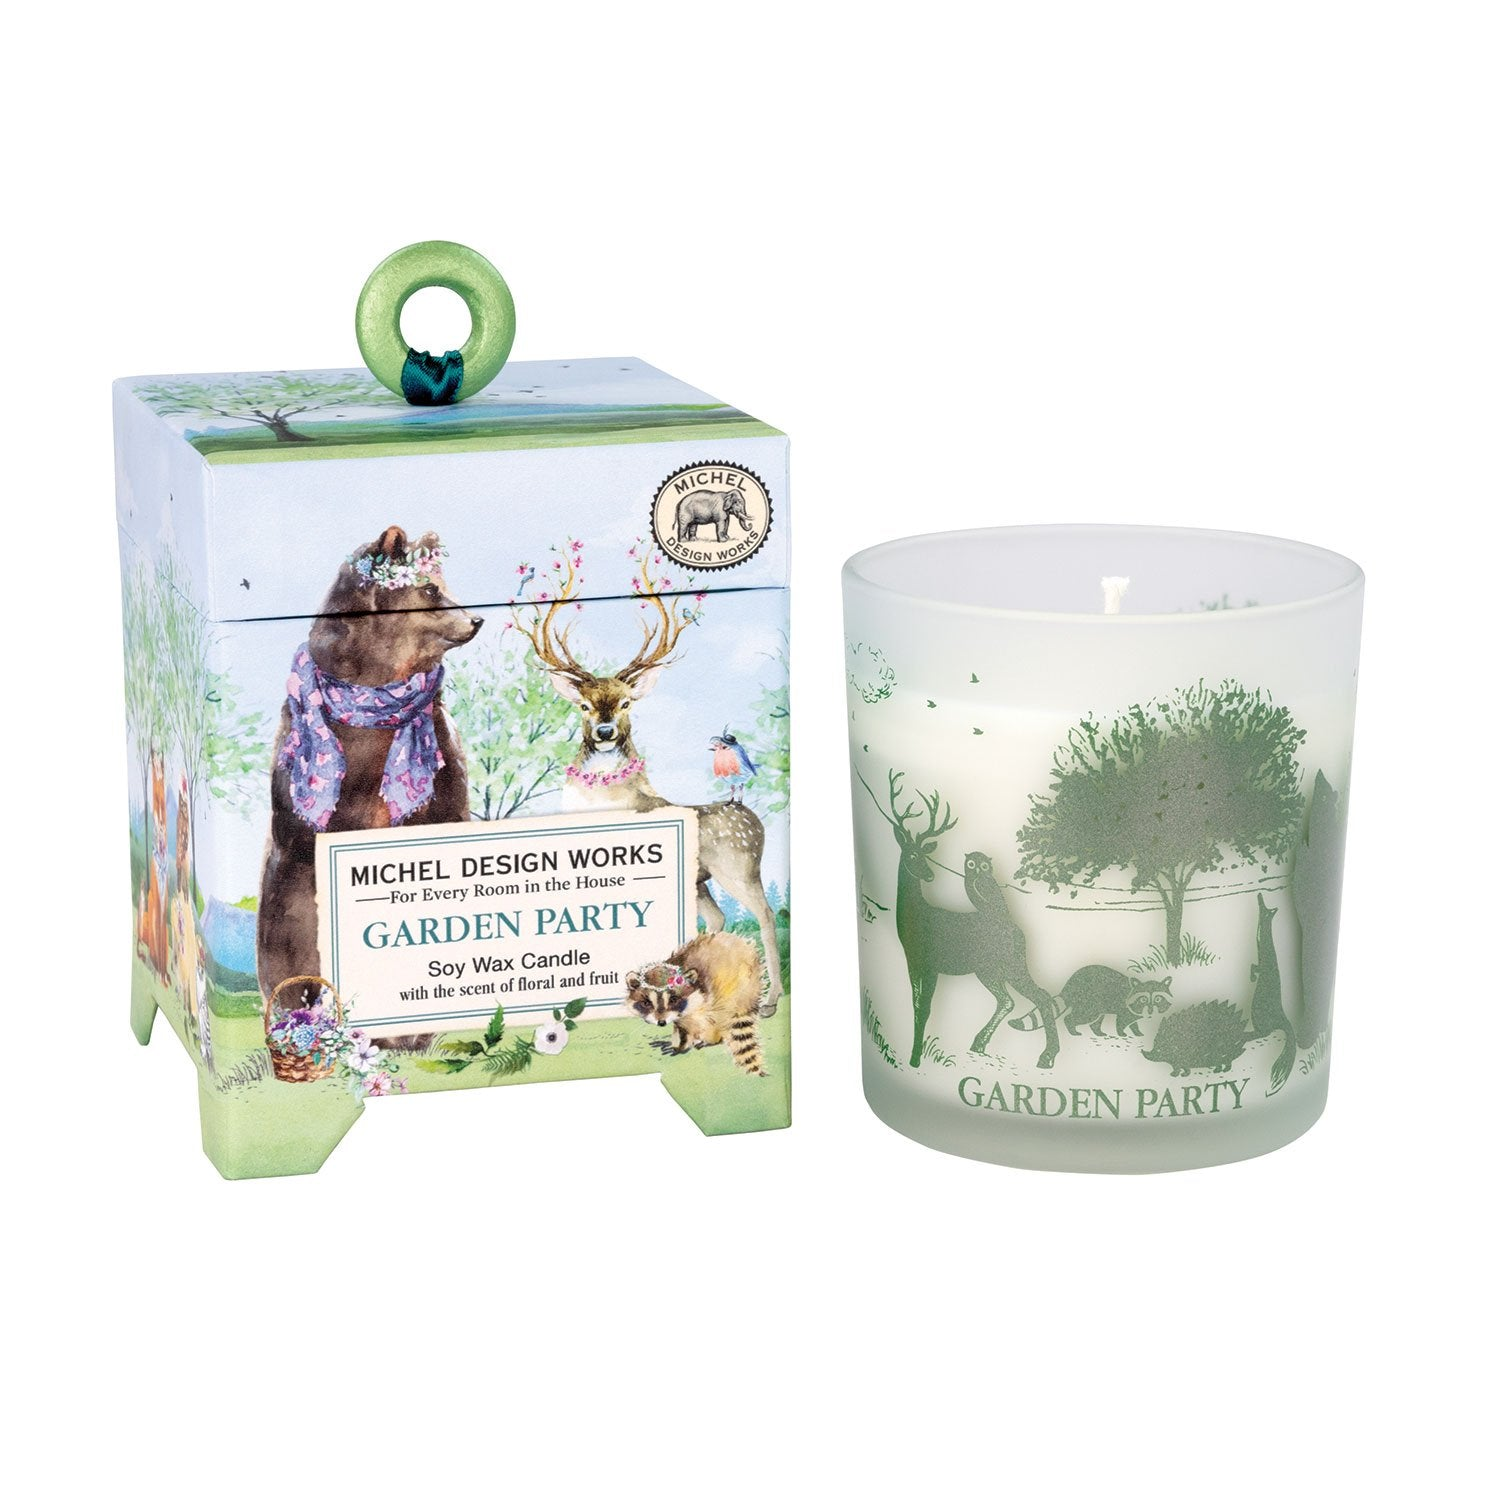 Garden Party 6.5 oz. Soy Wax Candle